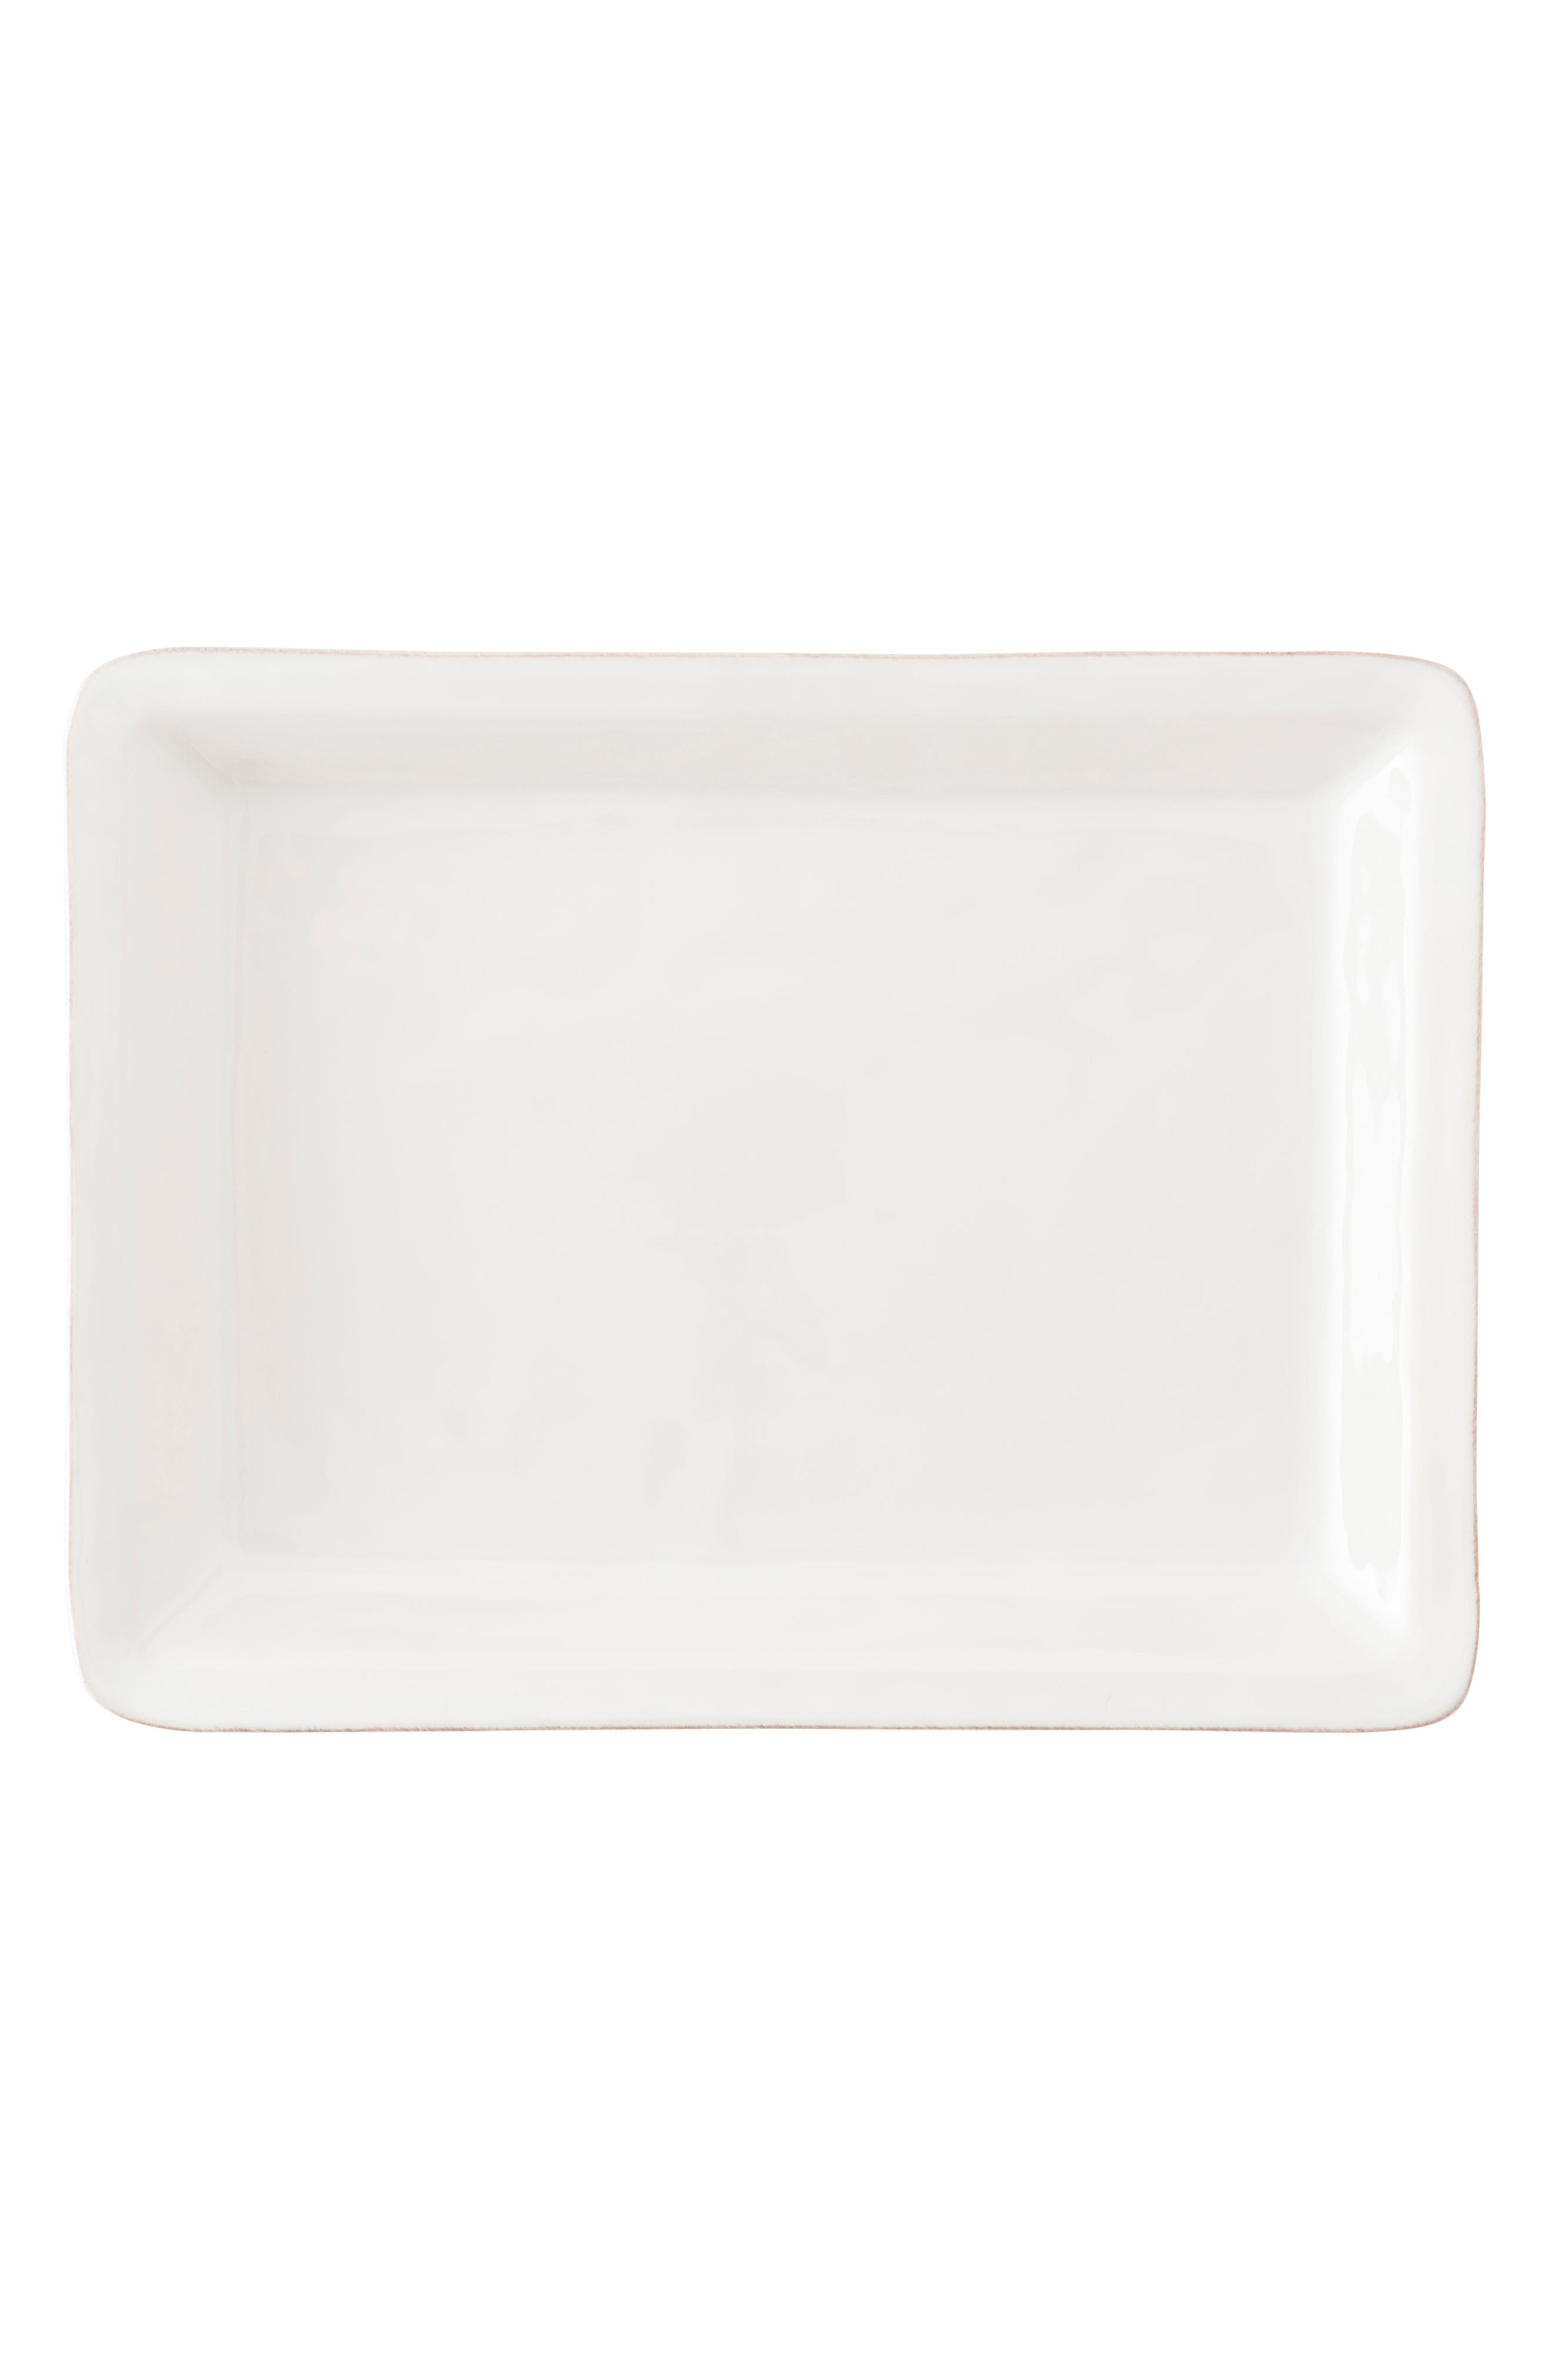 Puro Large Ceramic Serving Tray,                         Main,                         color, Whitewash